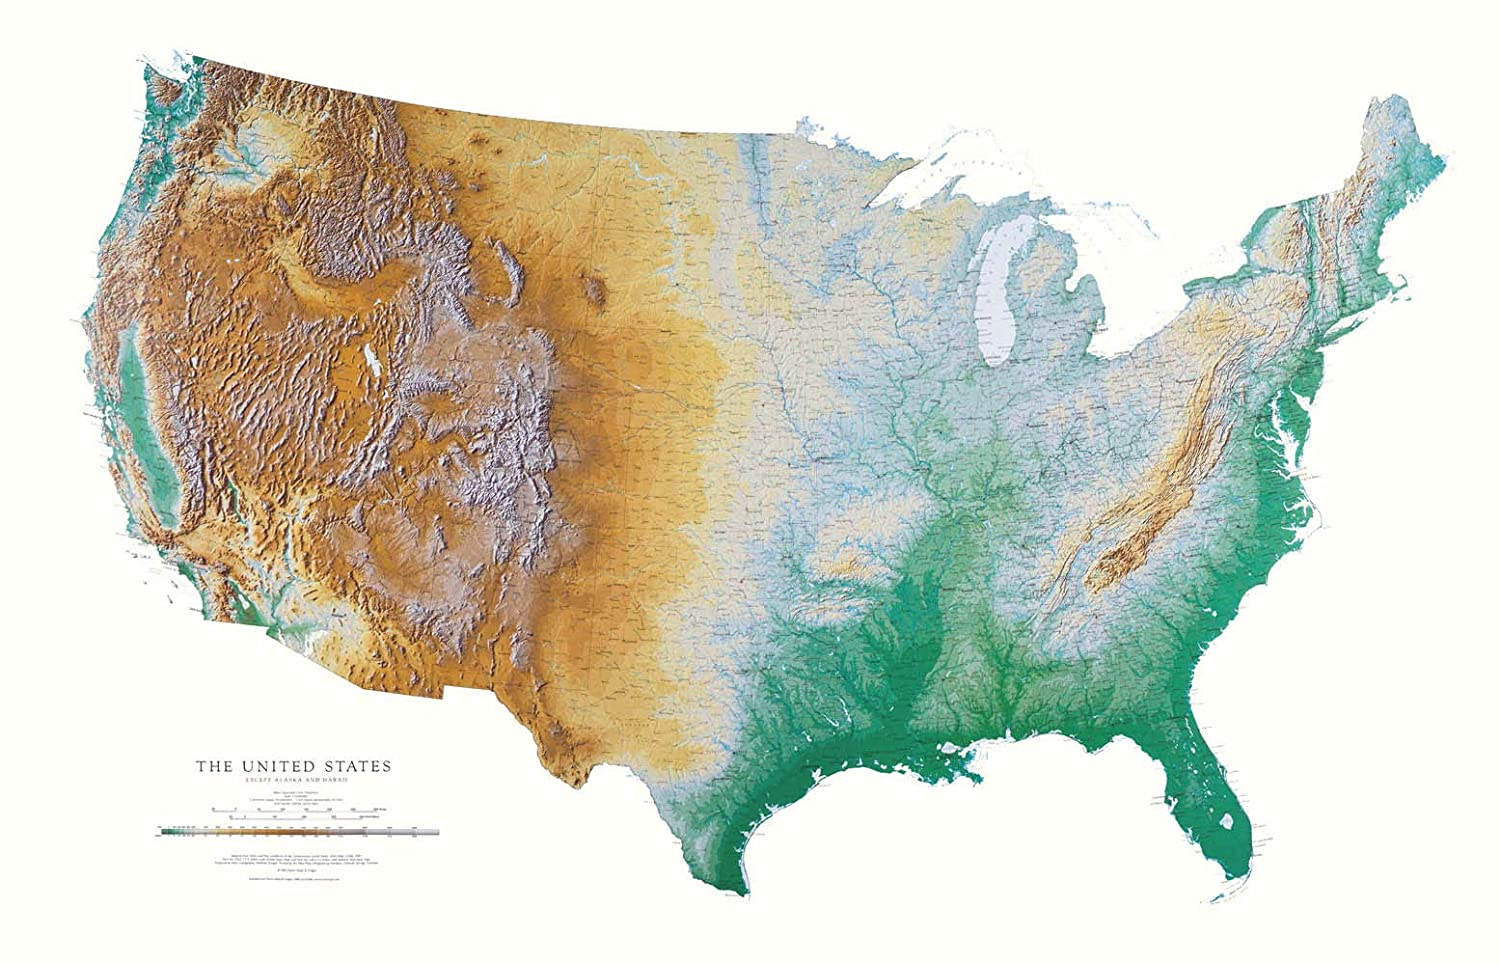 United States Map Topographic.Amazon Com United States Topographic Wall Map By Raven Maps